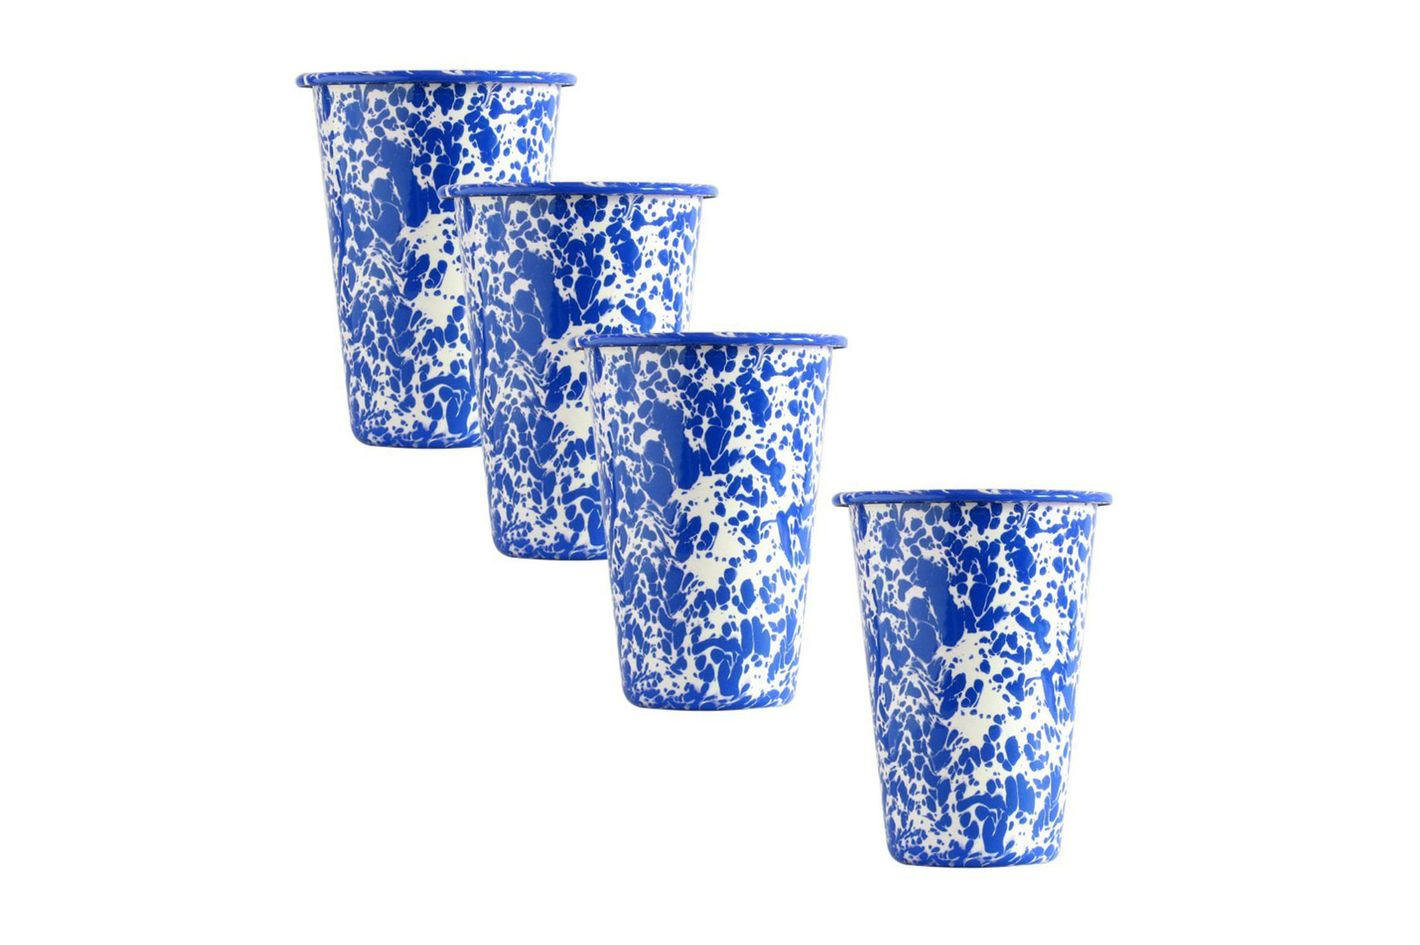 Crow Canyon Home Enamelware Tumblers, Set of 4